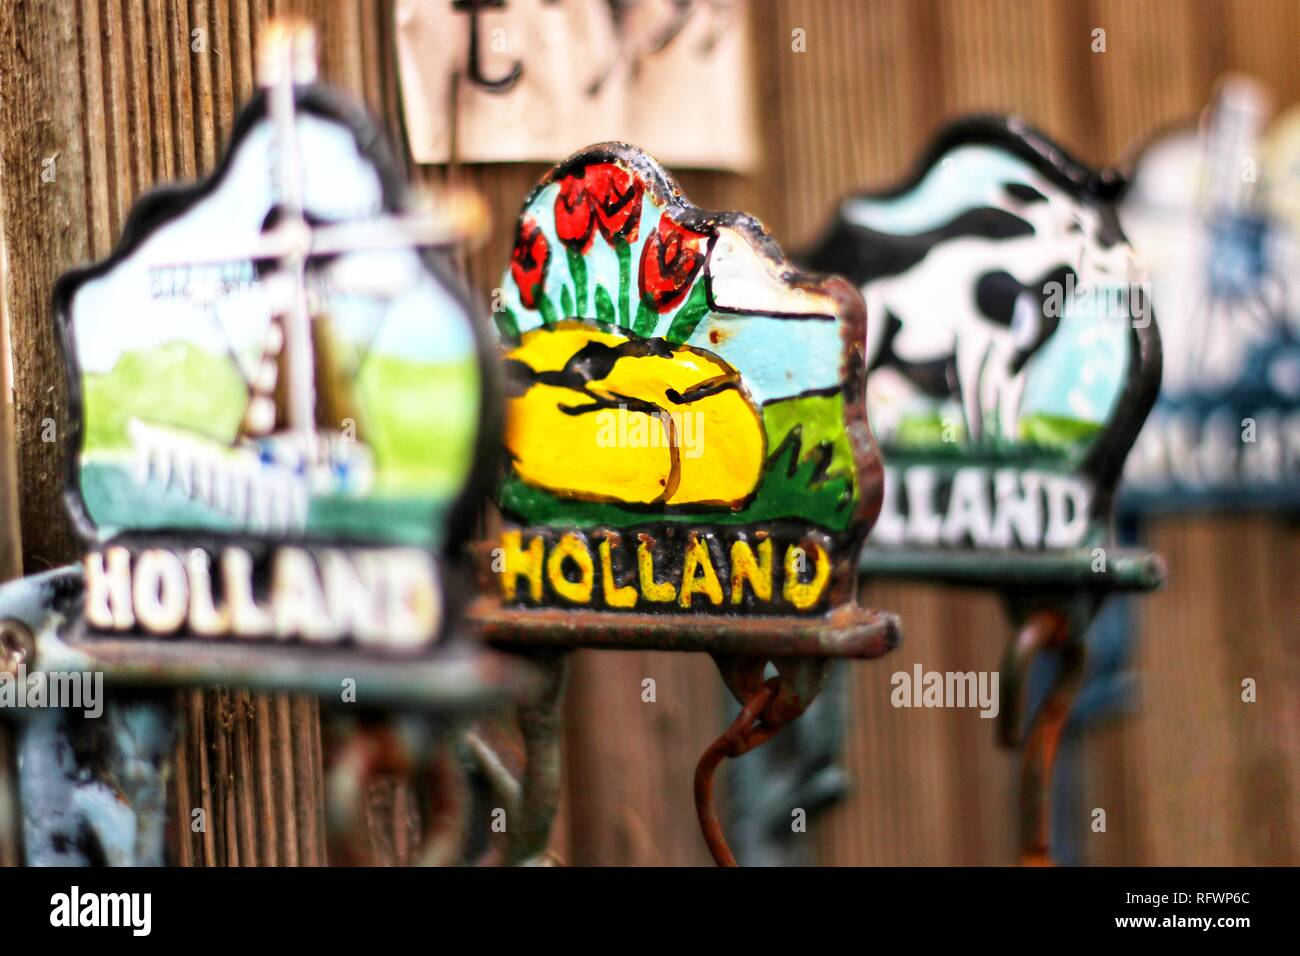 Colourful tourist souvenirs with the word Holland in bold lettering, Amsterdam Flower Market, The Netherlands, Europe. - Stock Image